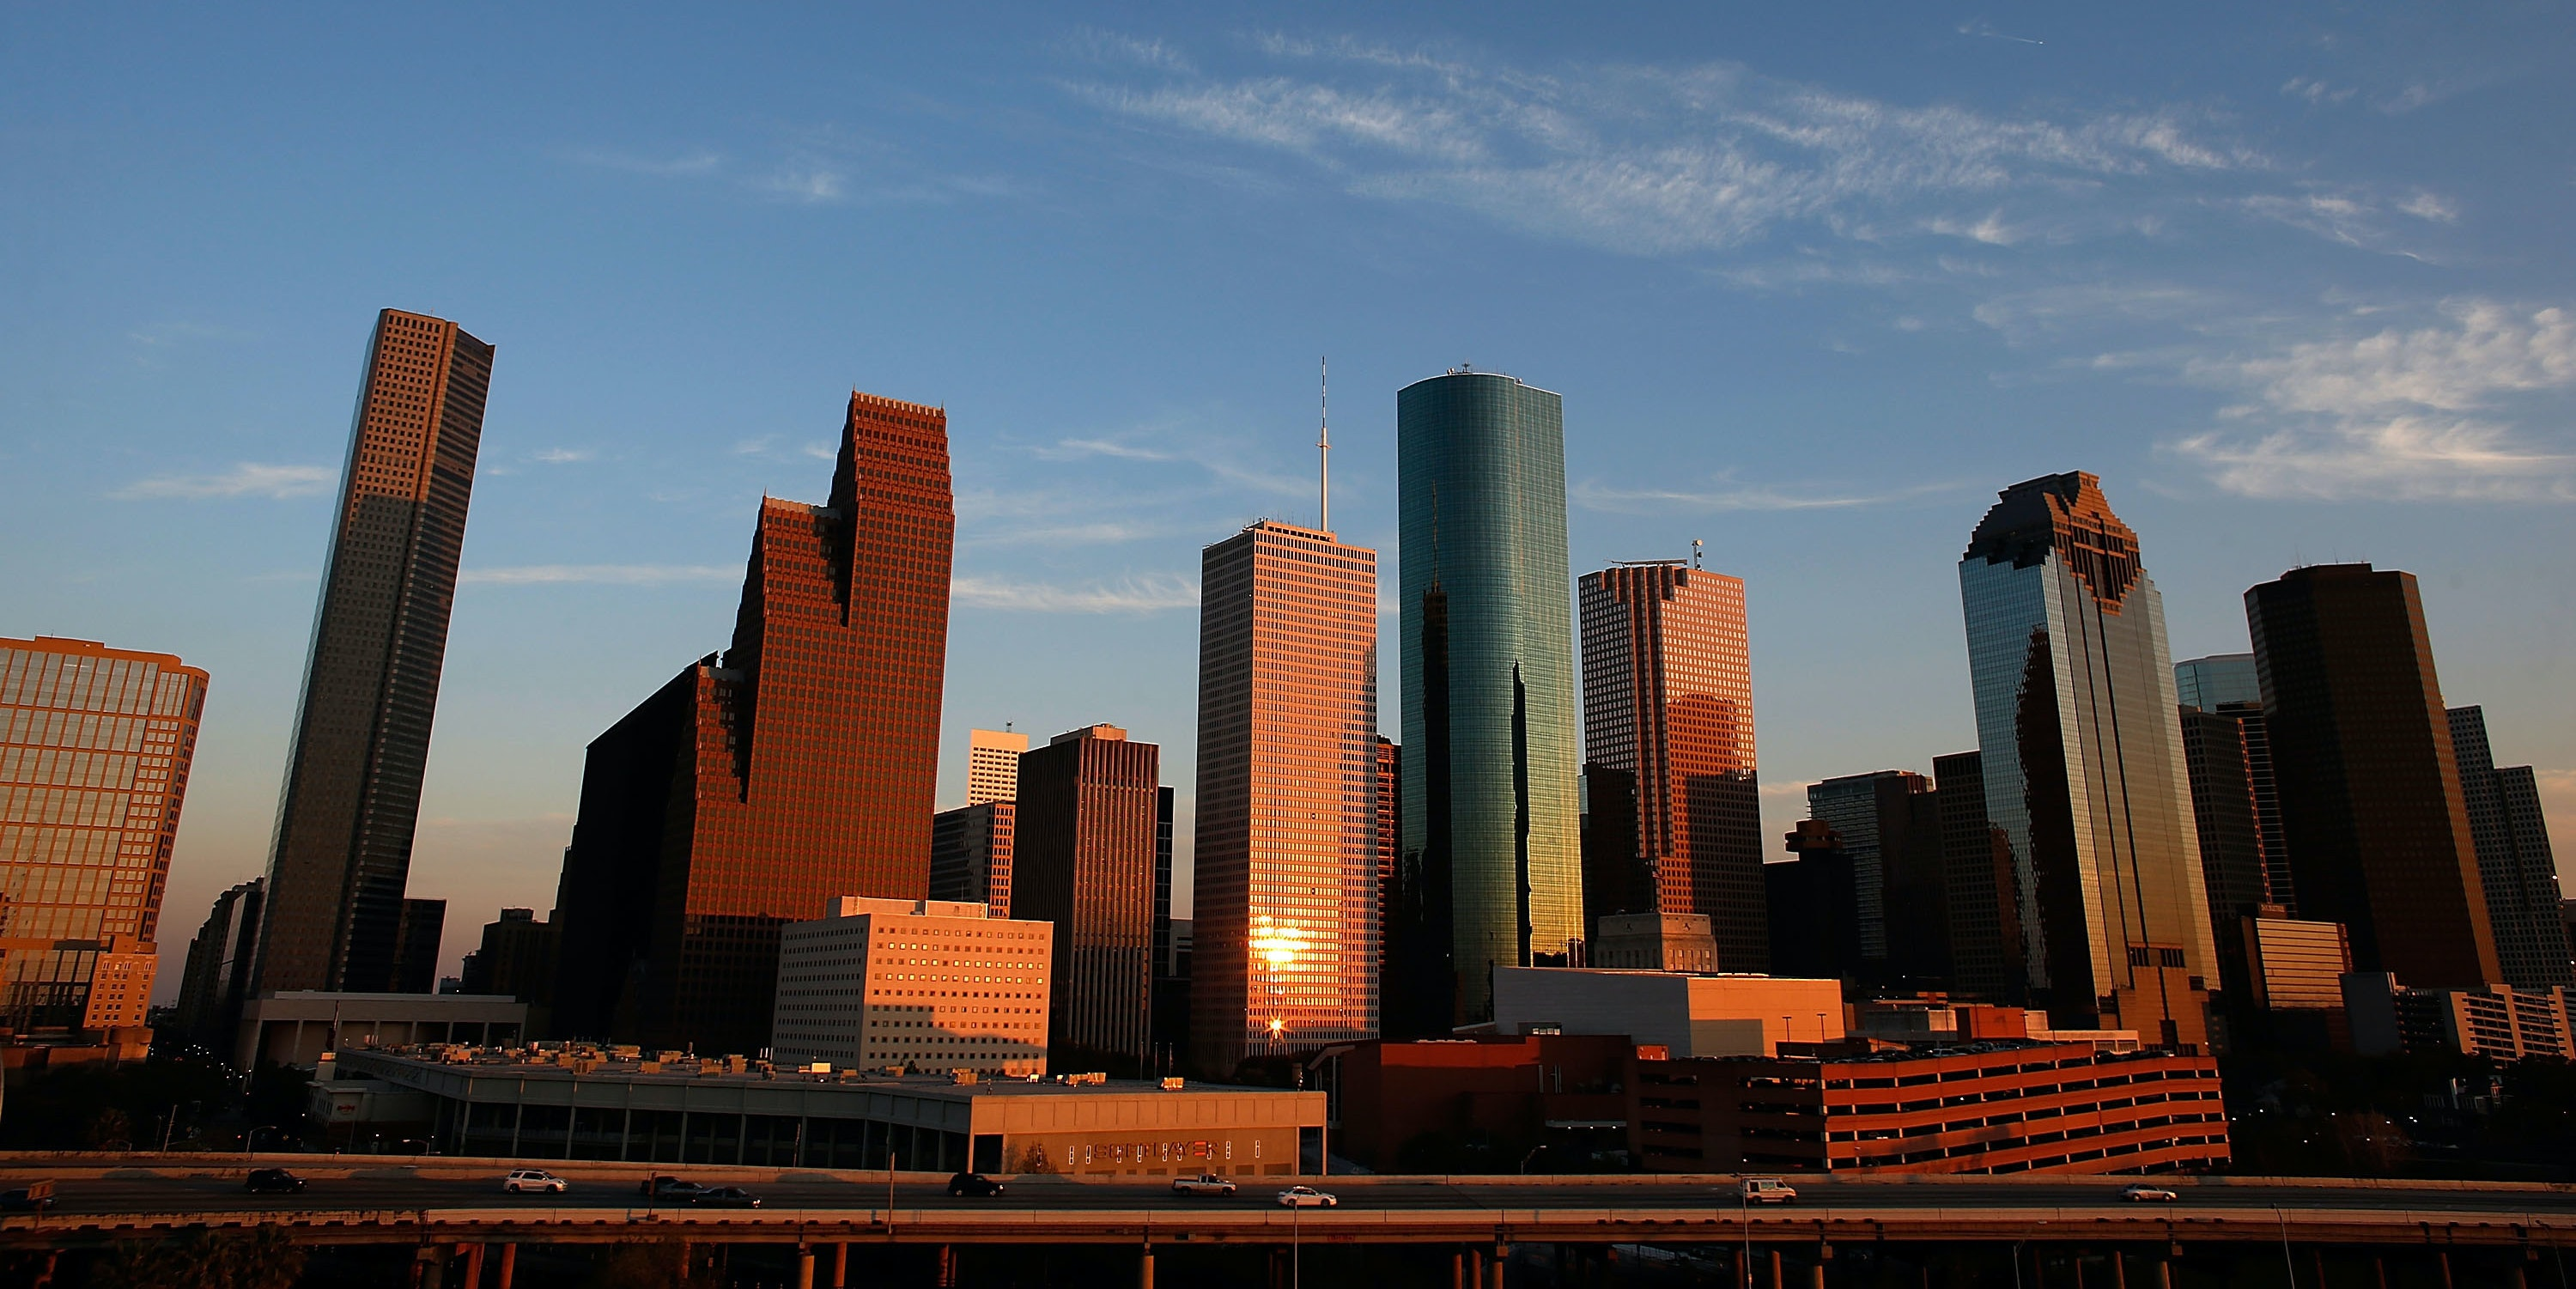 A view of the Houston skyline at dusk,